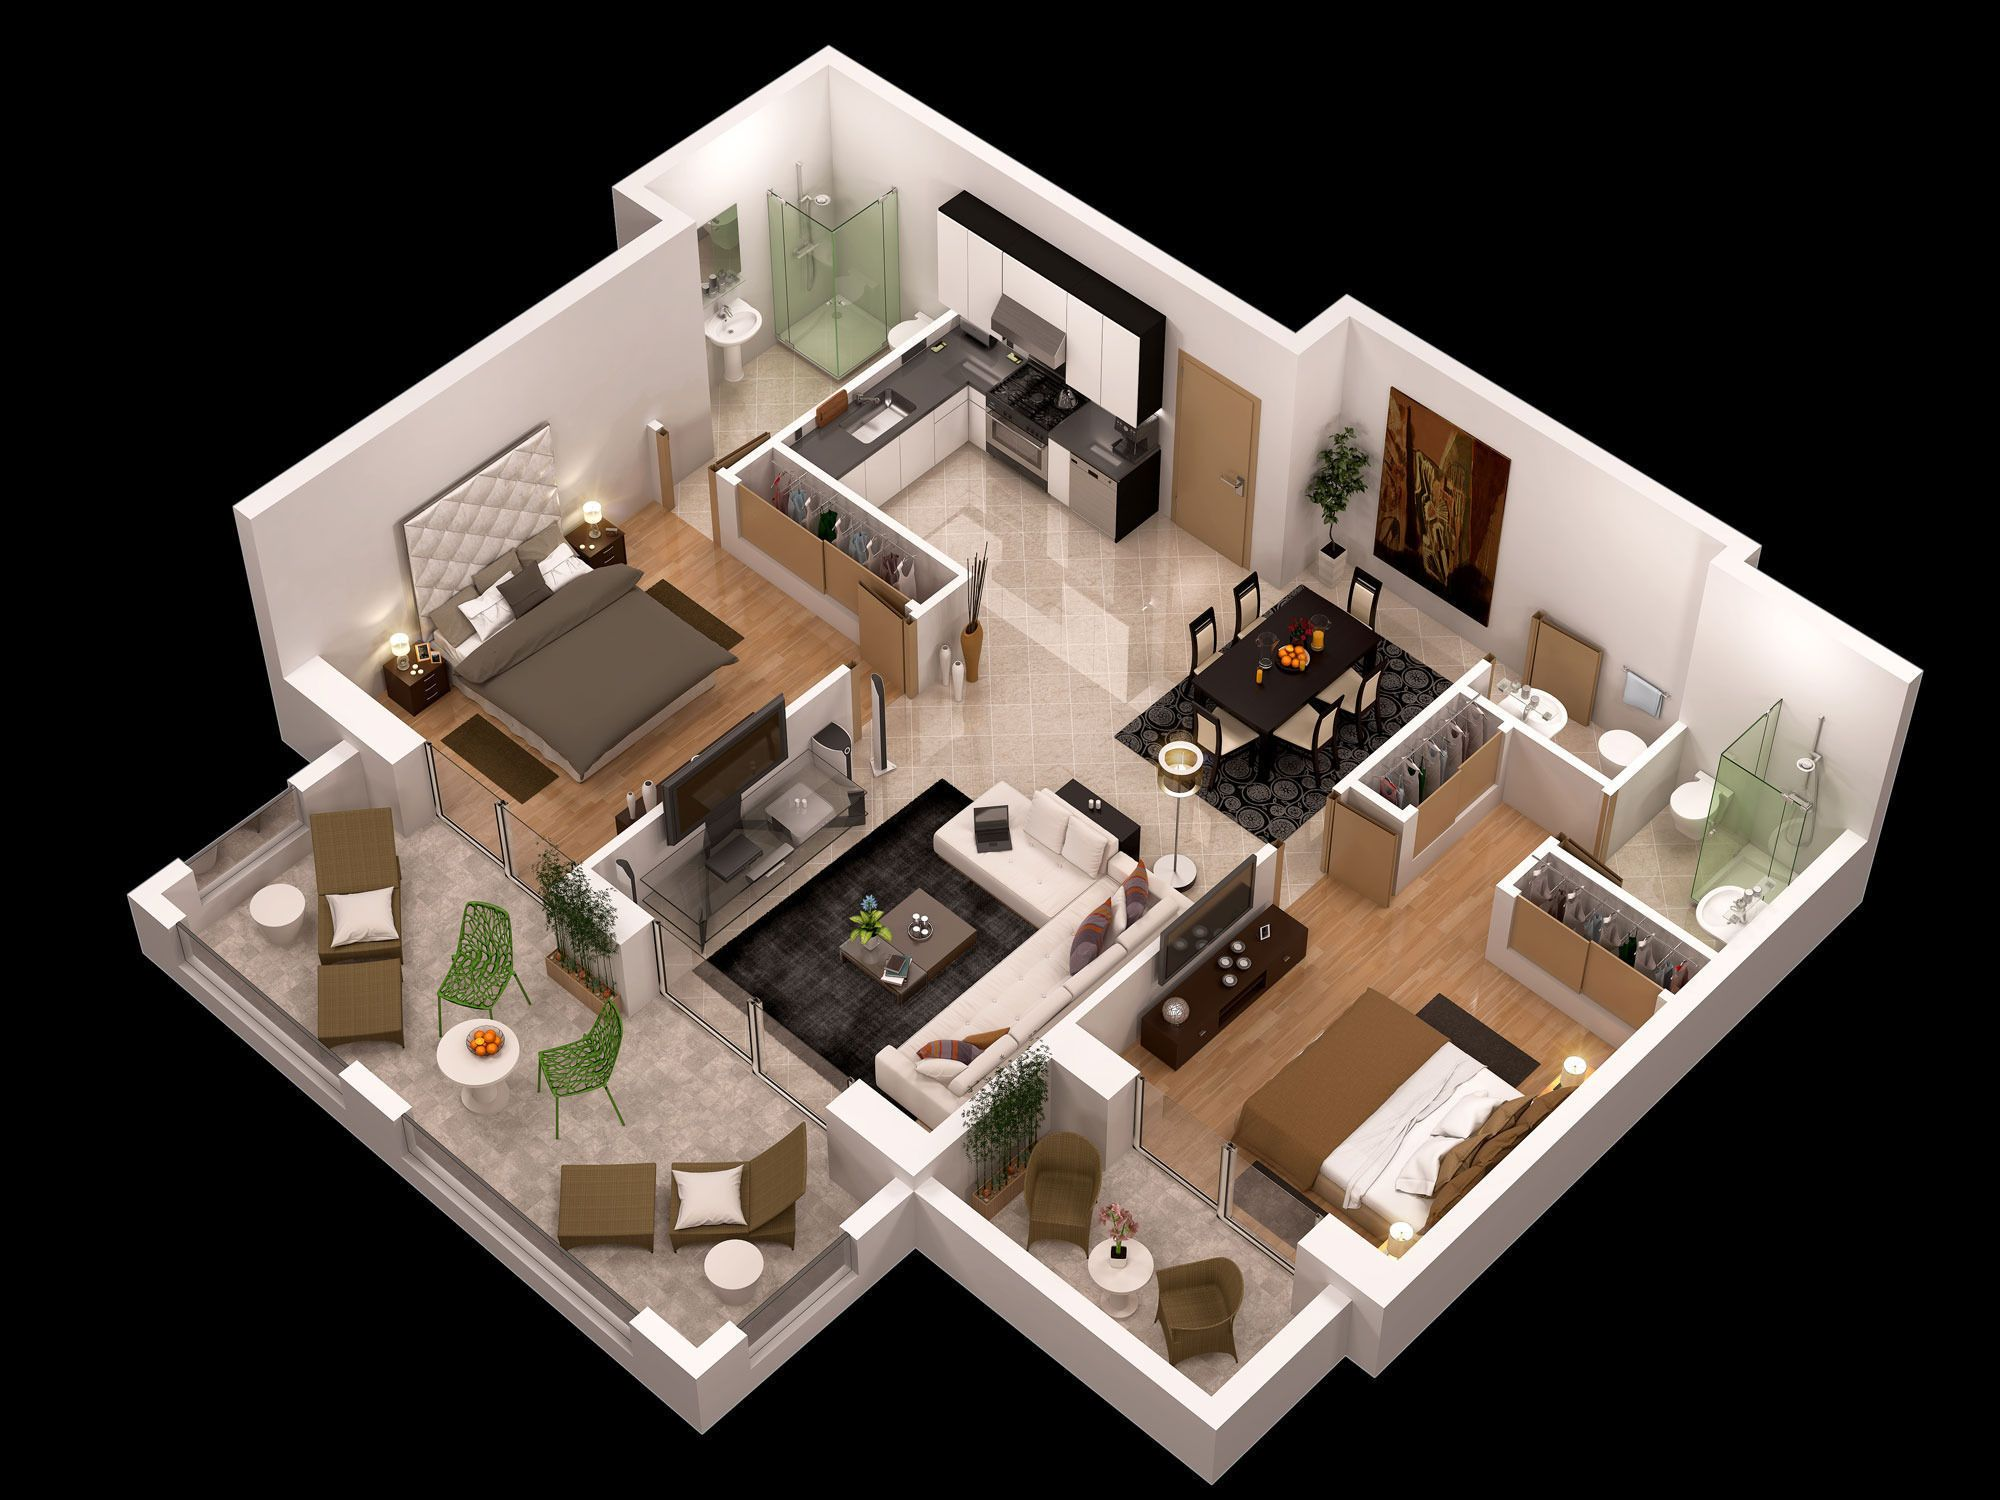 detailed floor plan 3d model max | Model house plan, 3d ...